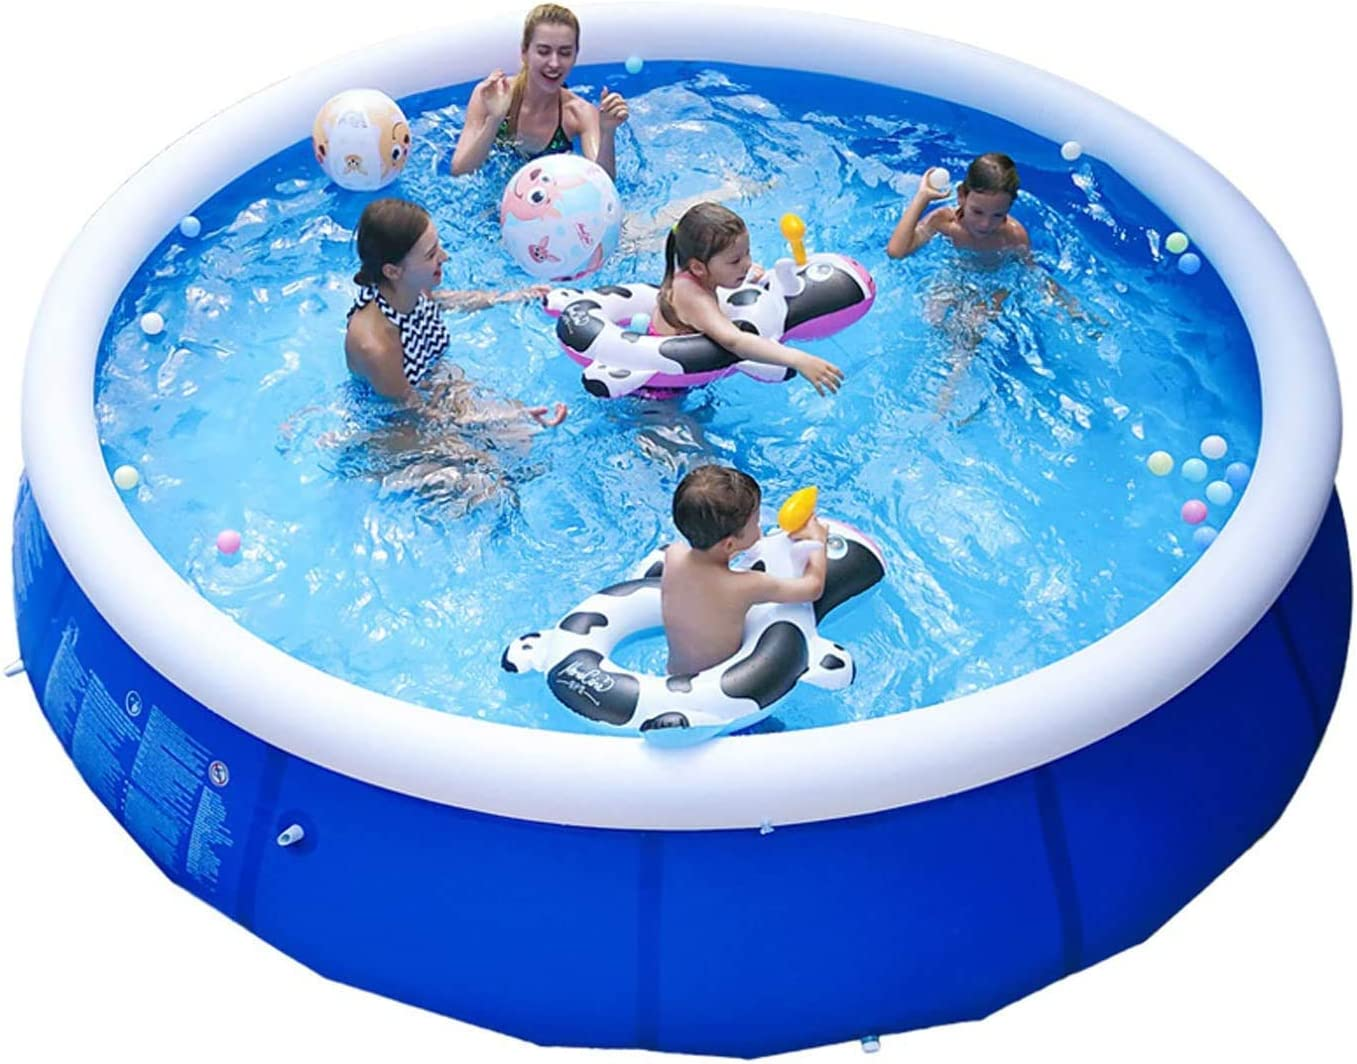 GANENN 【DHL DELIVERY】 2020 New Swimming Pool Family 180 cm x 73 cm A: 1-2 People: 6 feet x 29 in Extra Large Quick Set Inflatable Above Ground Swimming Pool with Filter Pump for Kids /& Adults